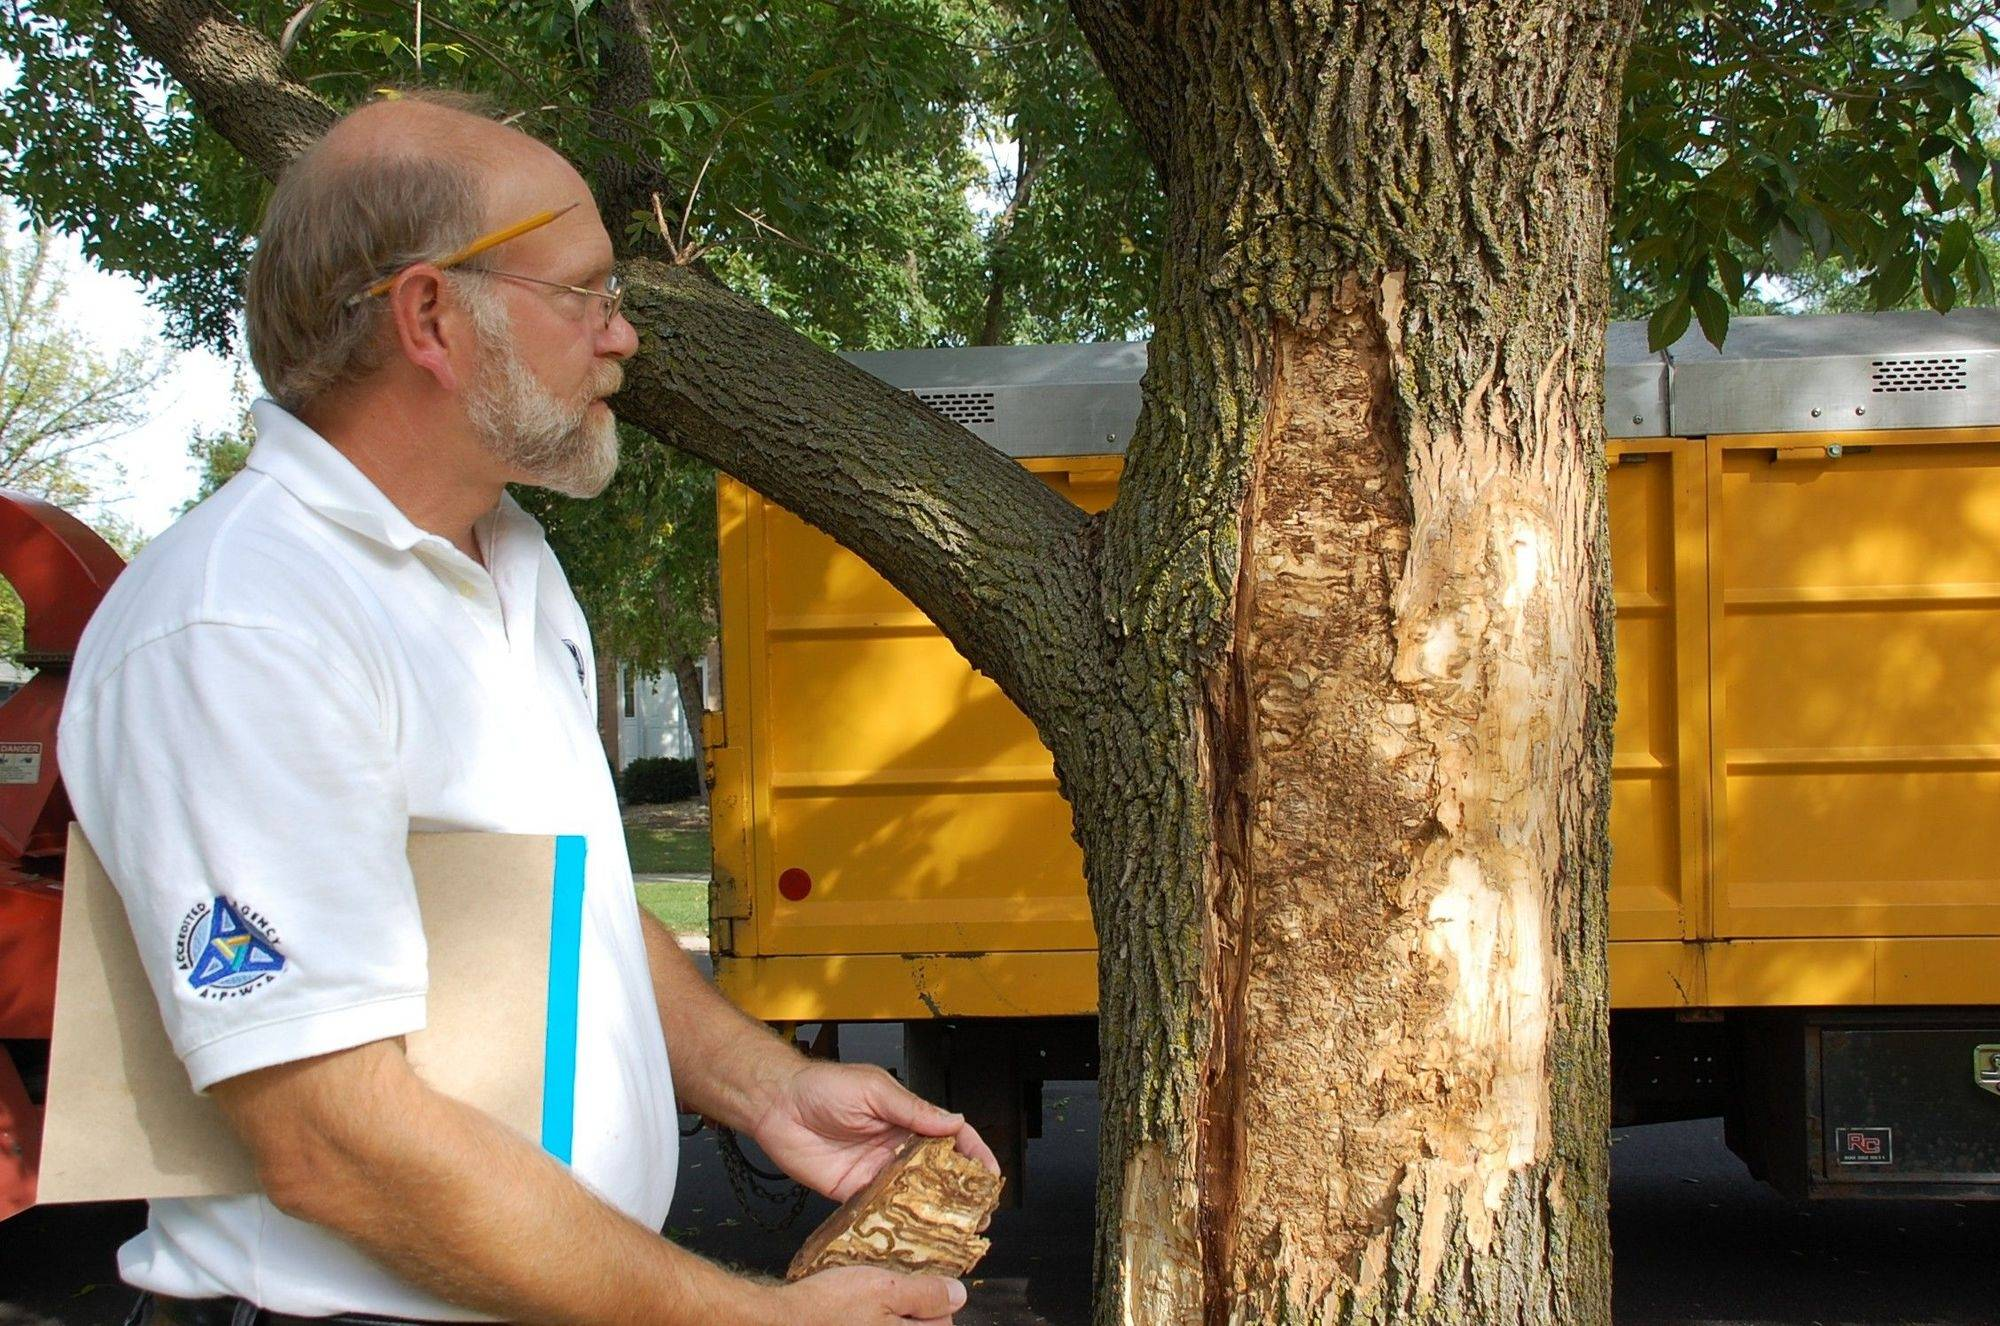 Jack Mitz, Naperville city forester, peels away bark and discovers the telltale serpentine tunnels dug by the Emerald Ash Borer. Infested trees must come down within 10 days and be disposed of under specific guidelines.